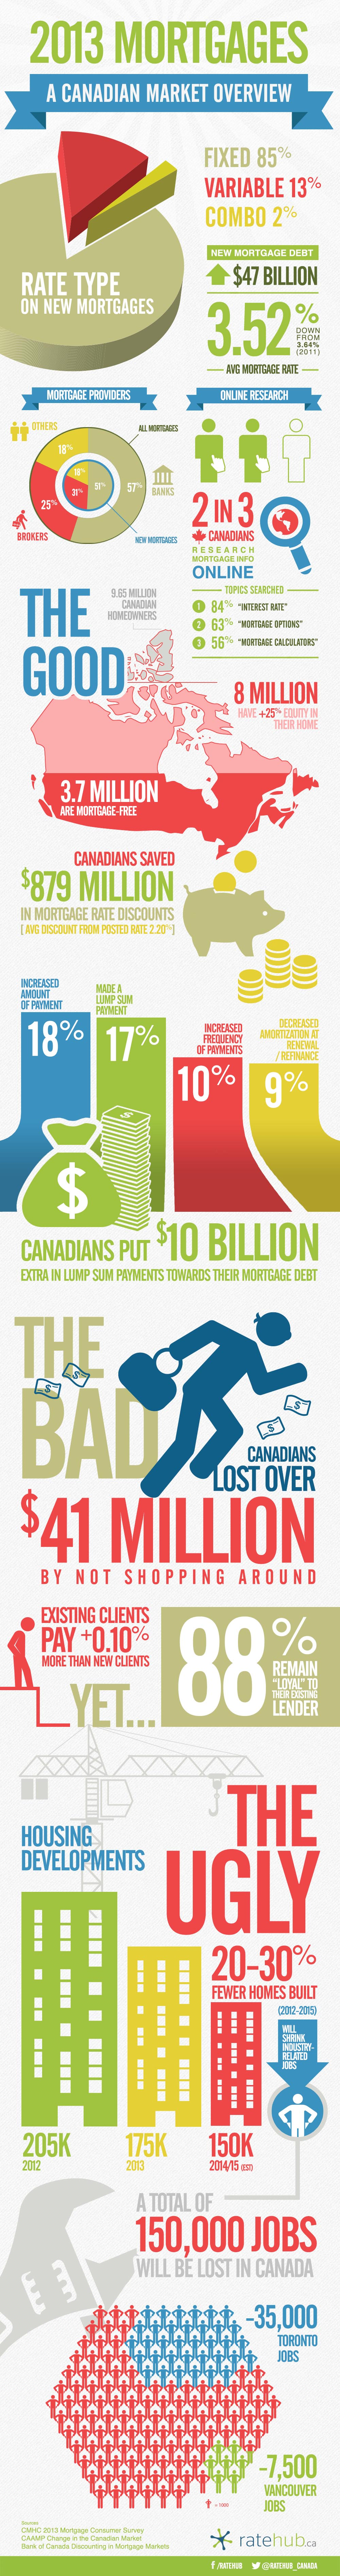 2013 Mortgages - The Good, The Bad, The Ugly